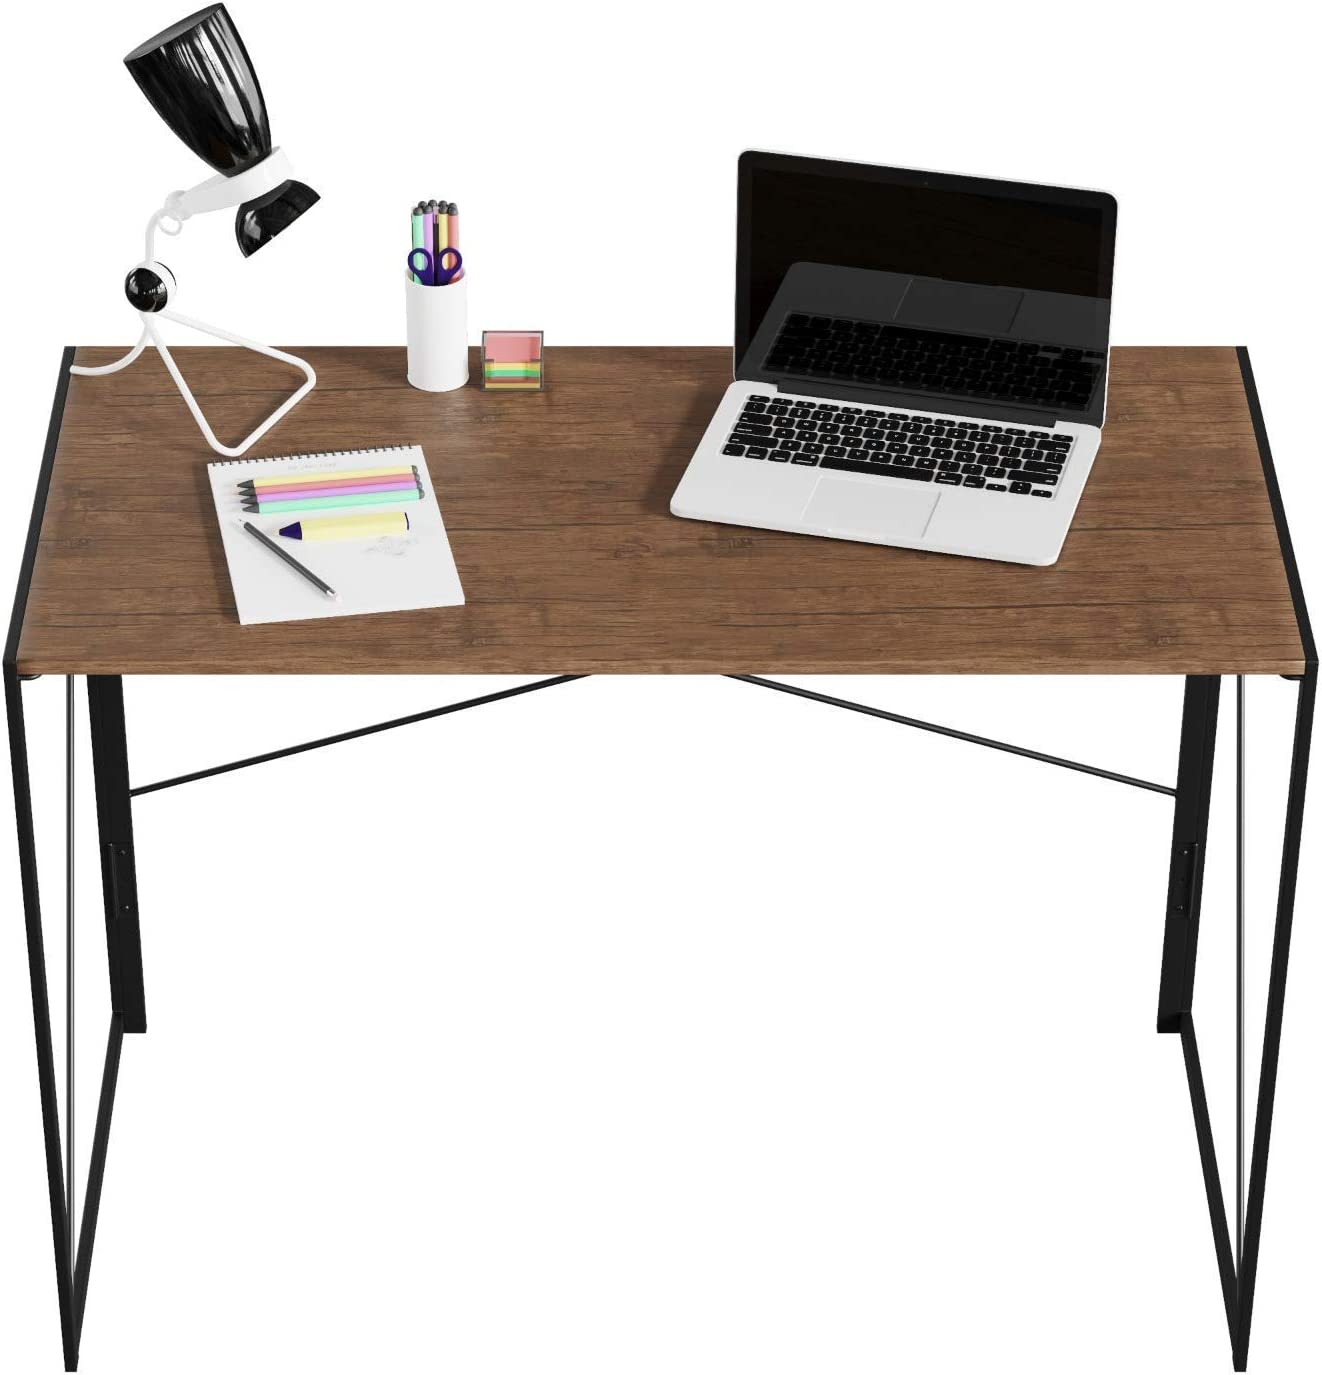 ASAR Folding Desks for Home Work Max 85% OFF Office Free shipping on posting reviews Desk C